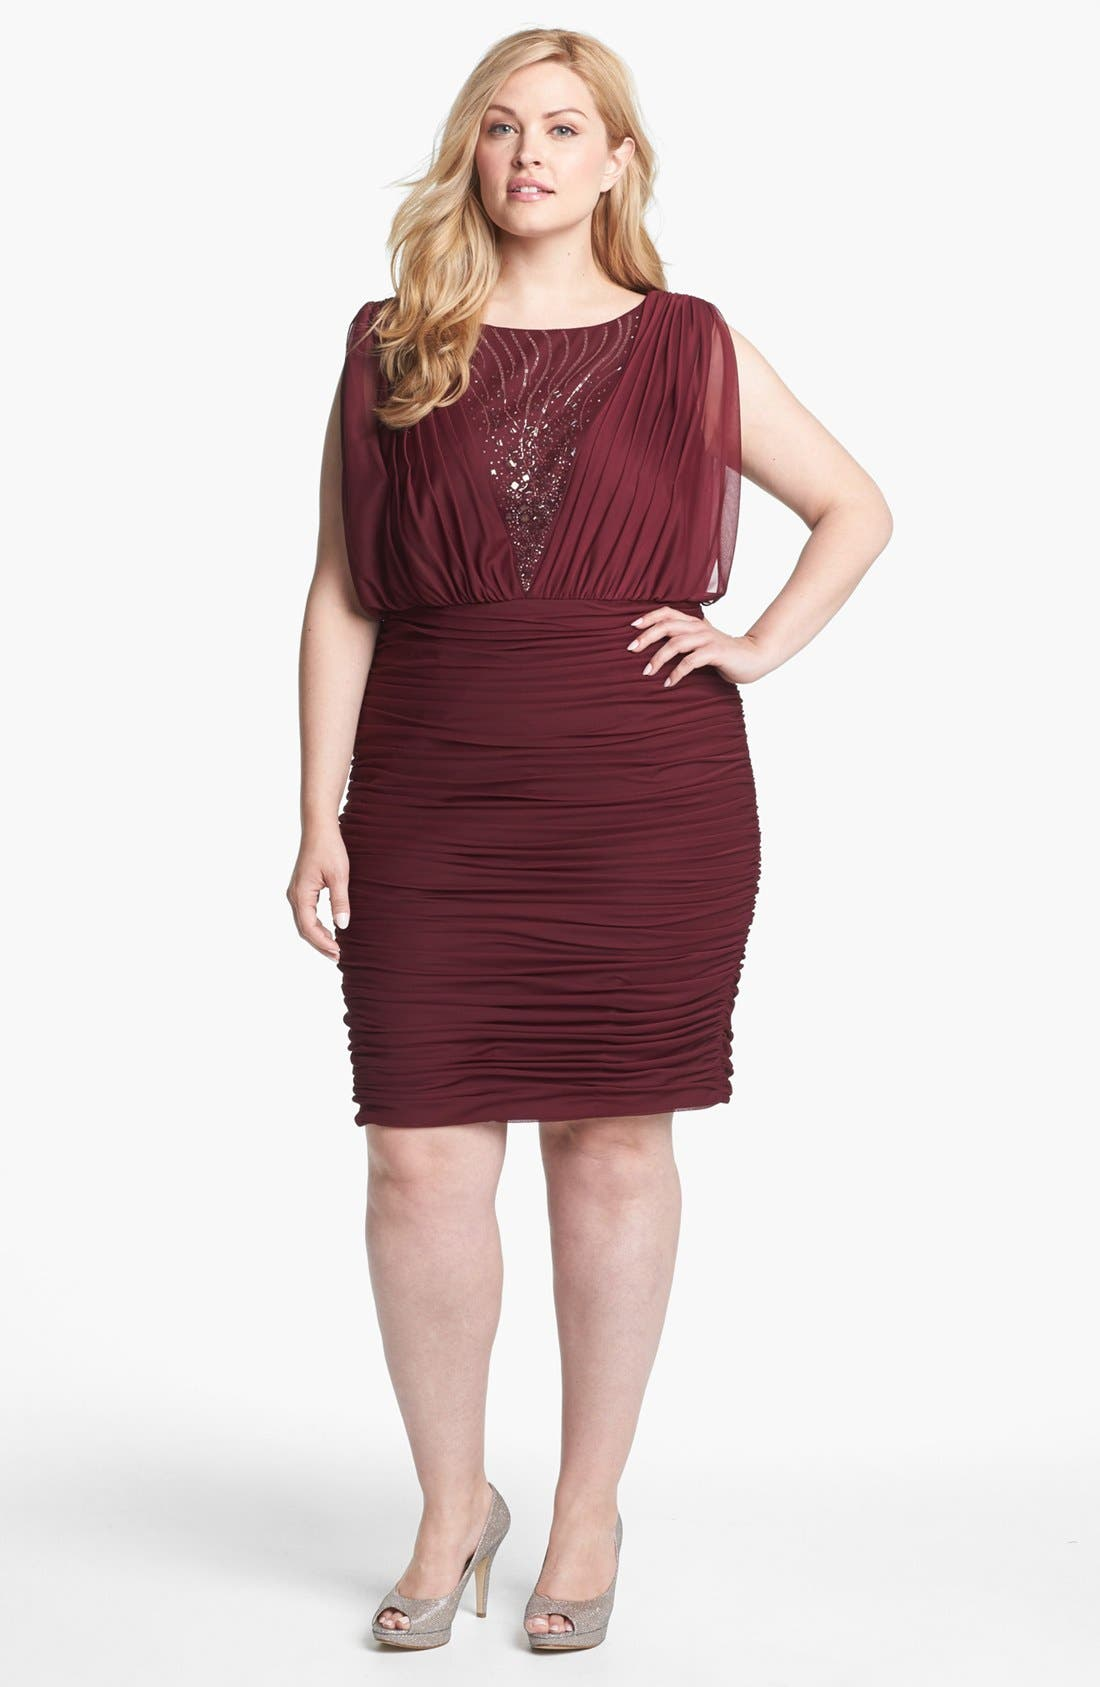 Alternate Image 1 Selected - Adrianna Papell Embellished Mesh Ruched Dress (Plus Size)